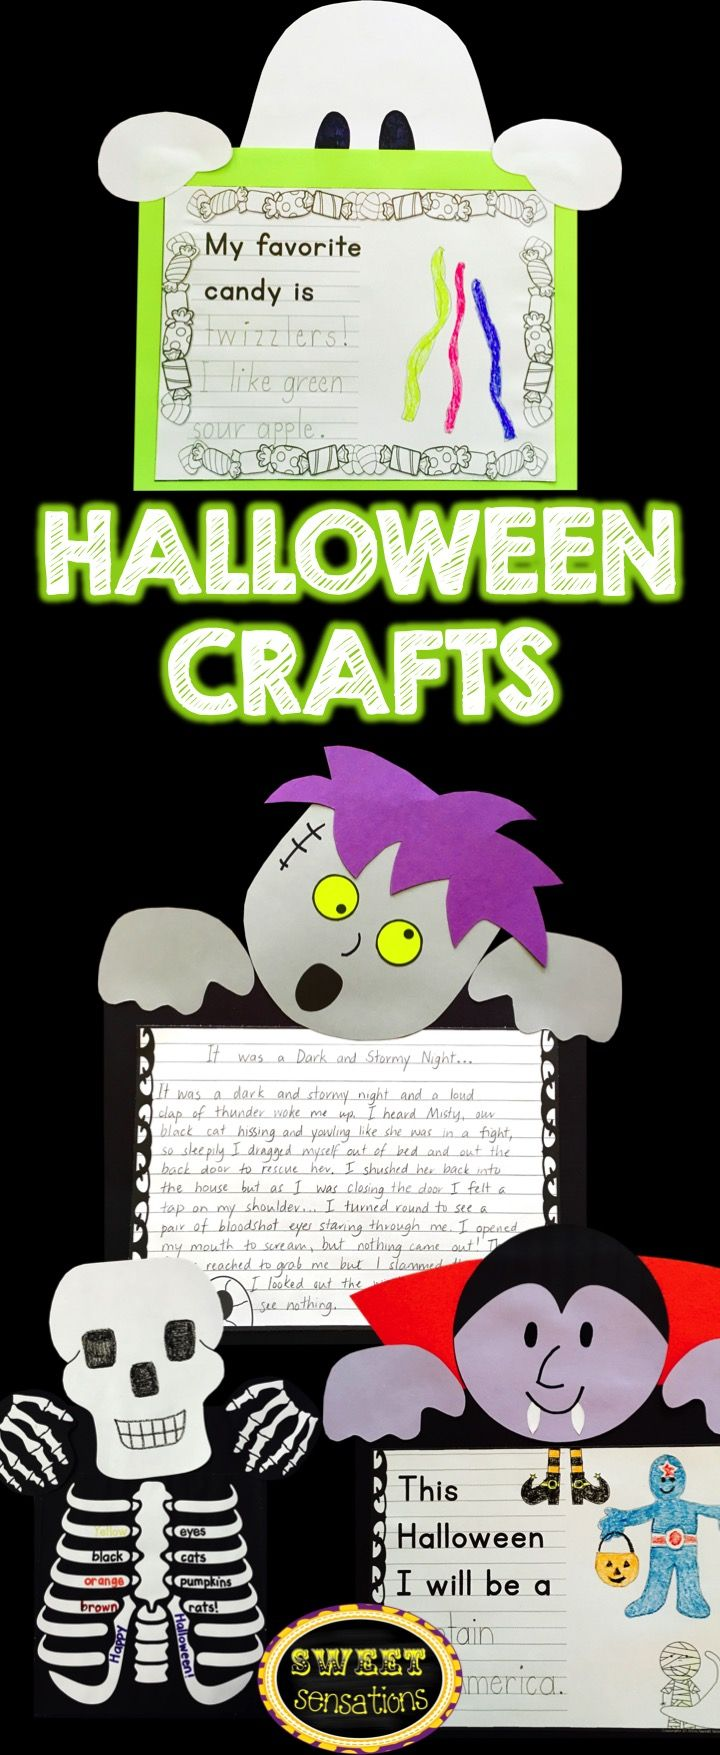 halloween crafts vampire zombie ghost and skeleton skeletons